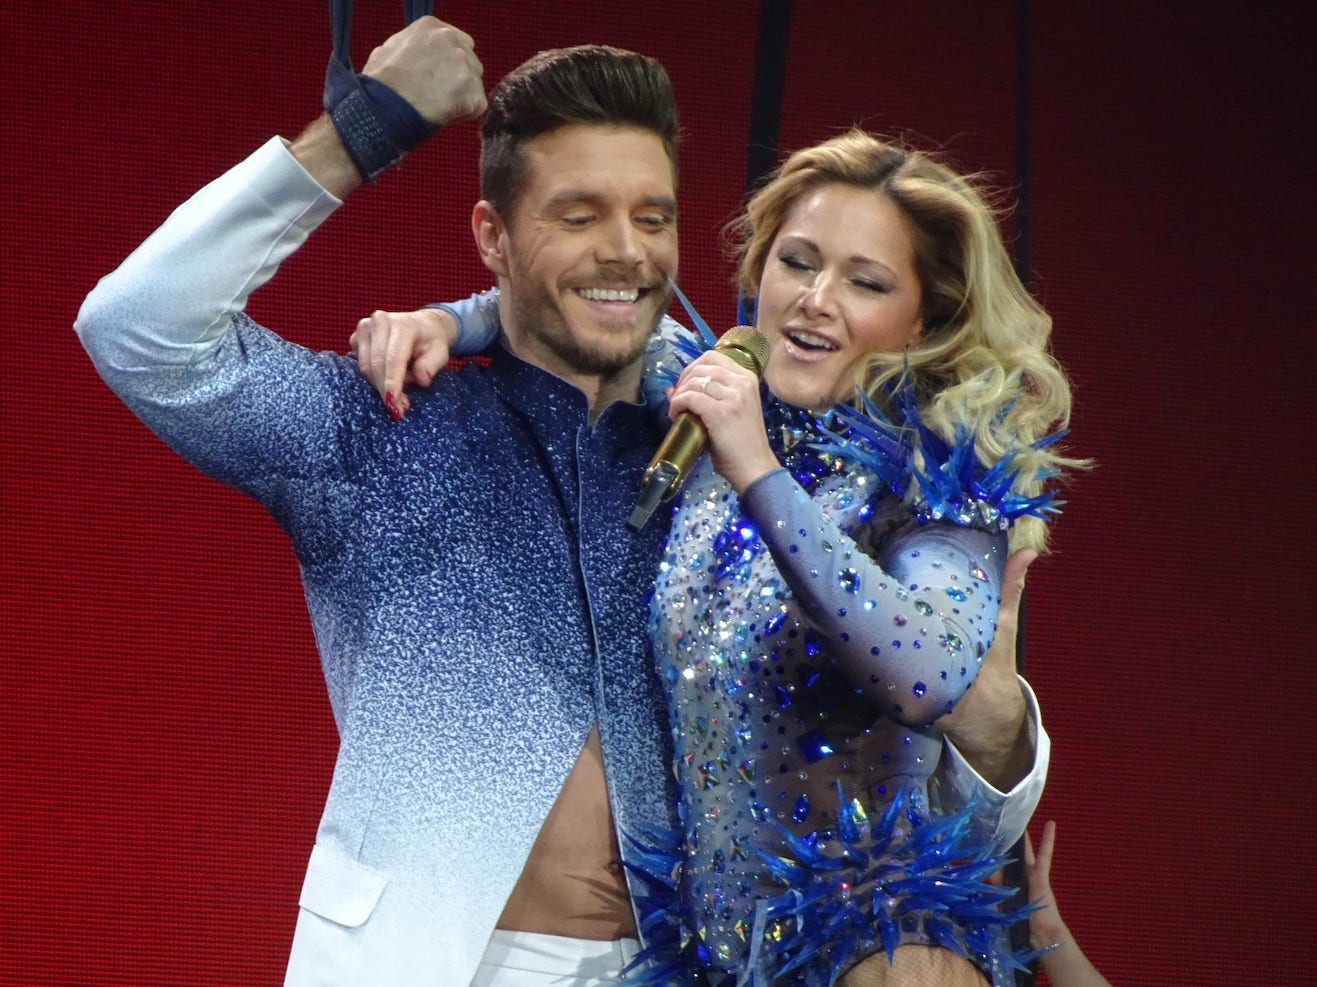 Helene Fischer Can Her Love Win The Fight